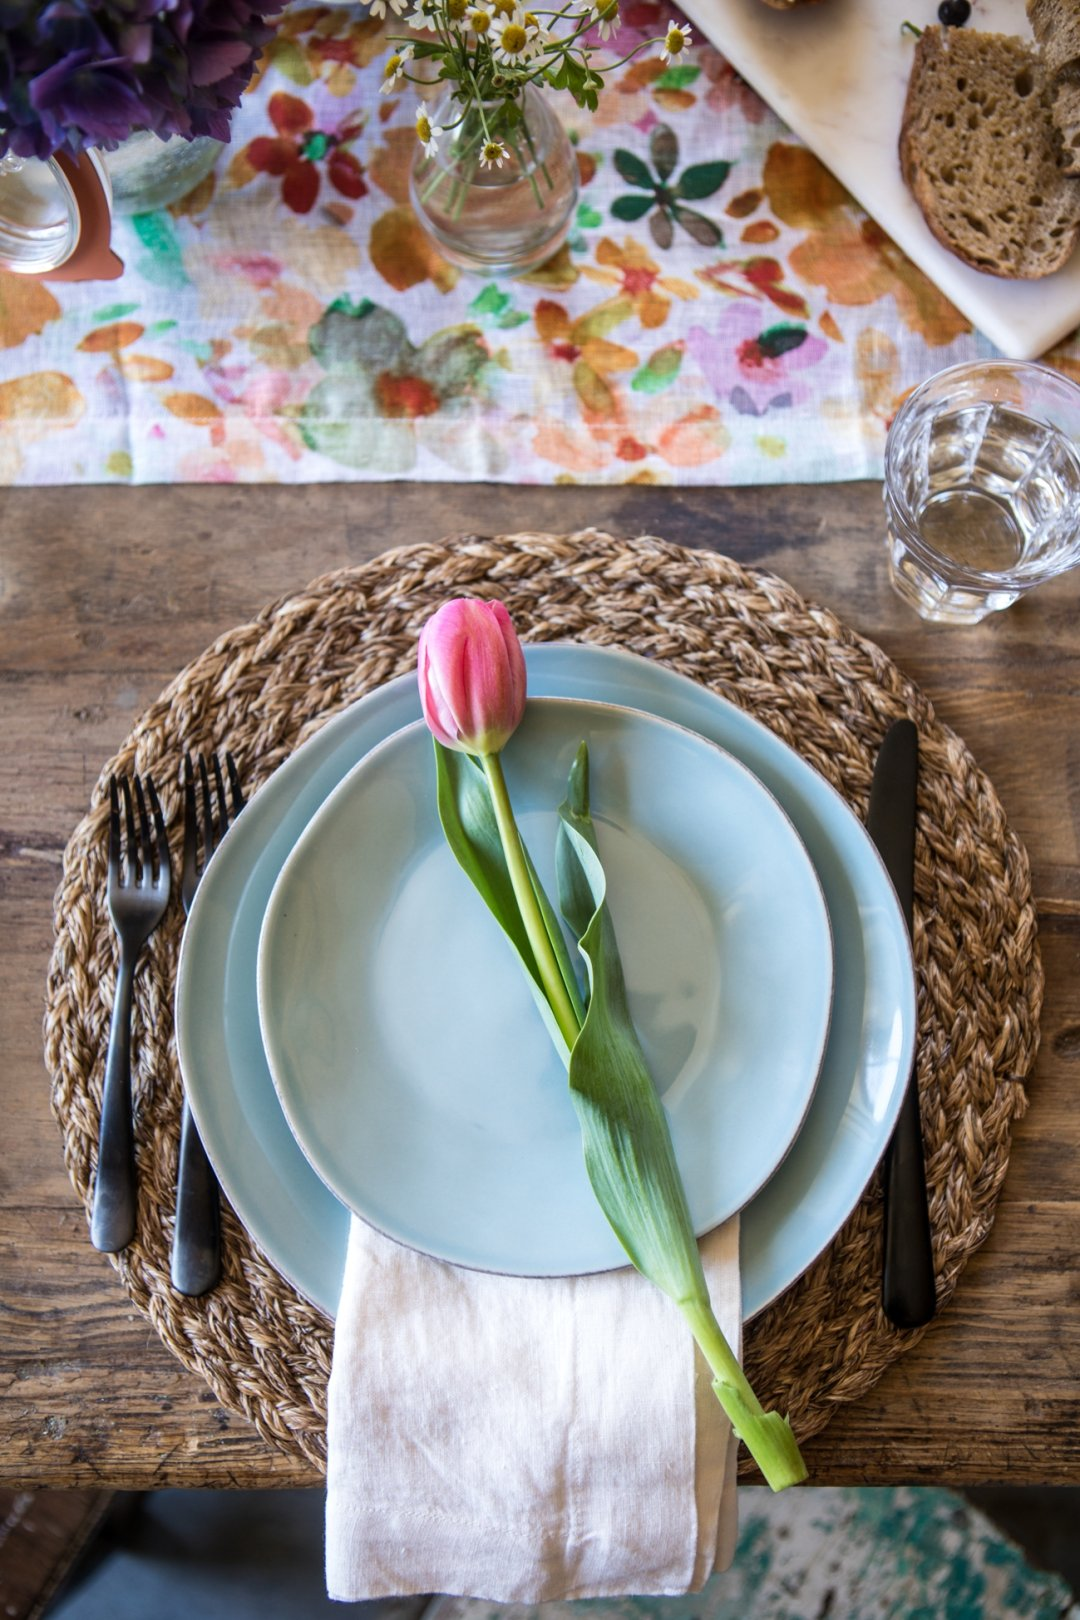 Blue plates with a pink tulip on top